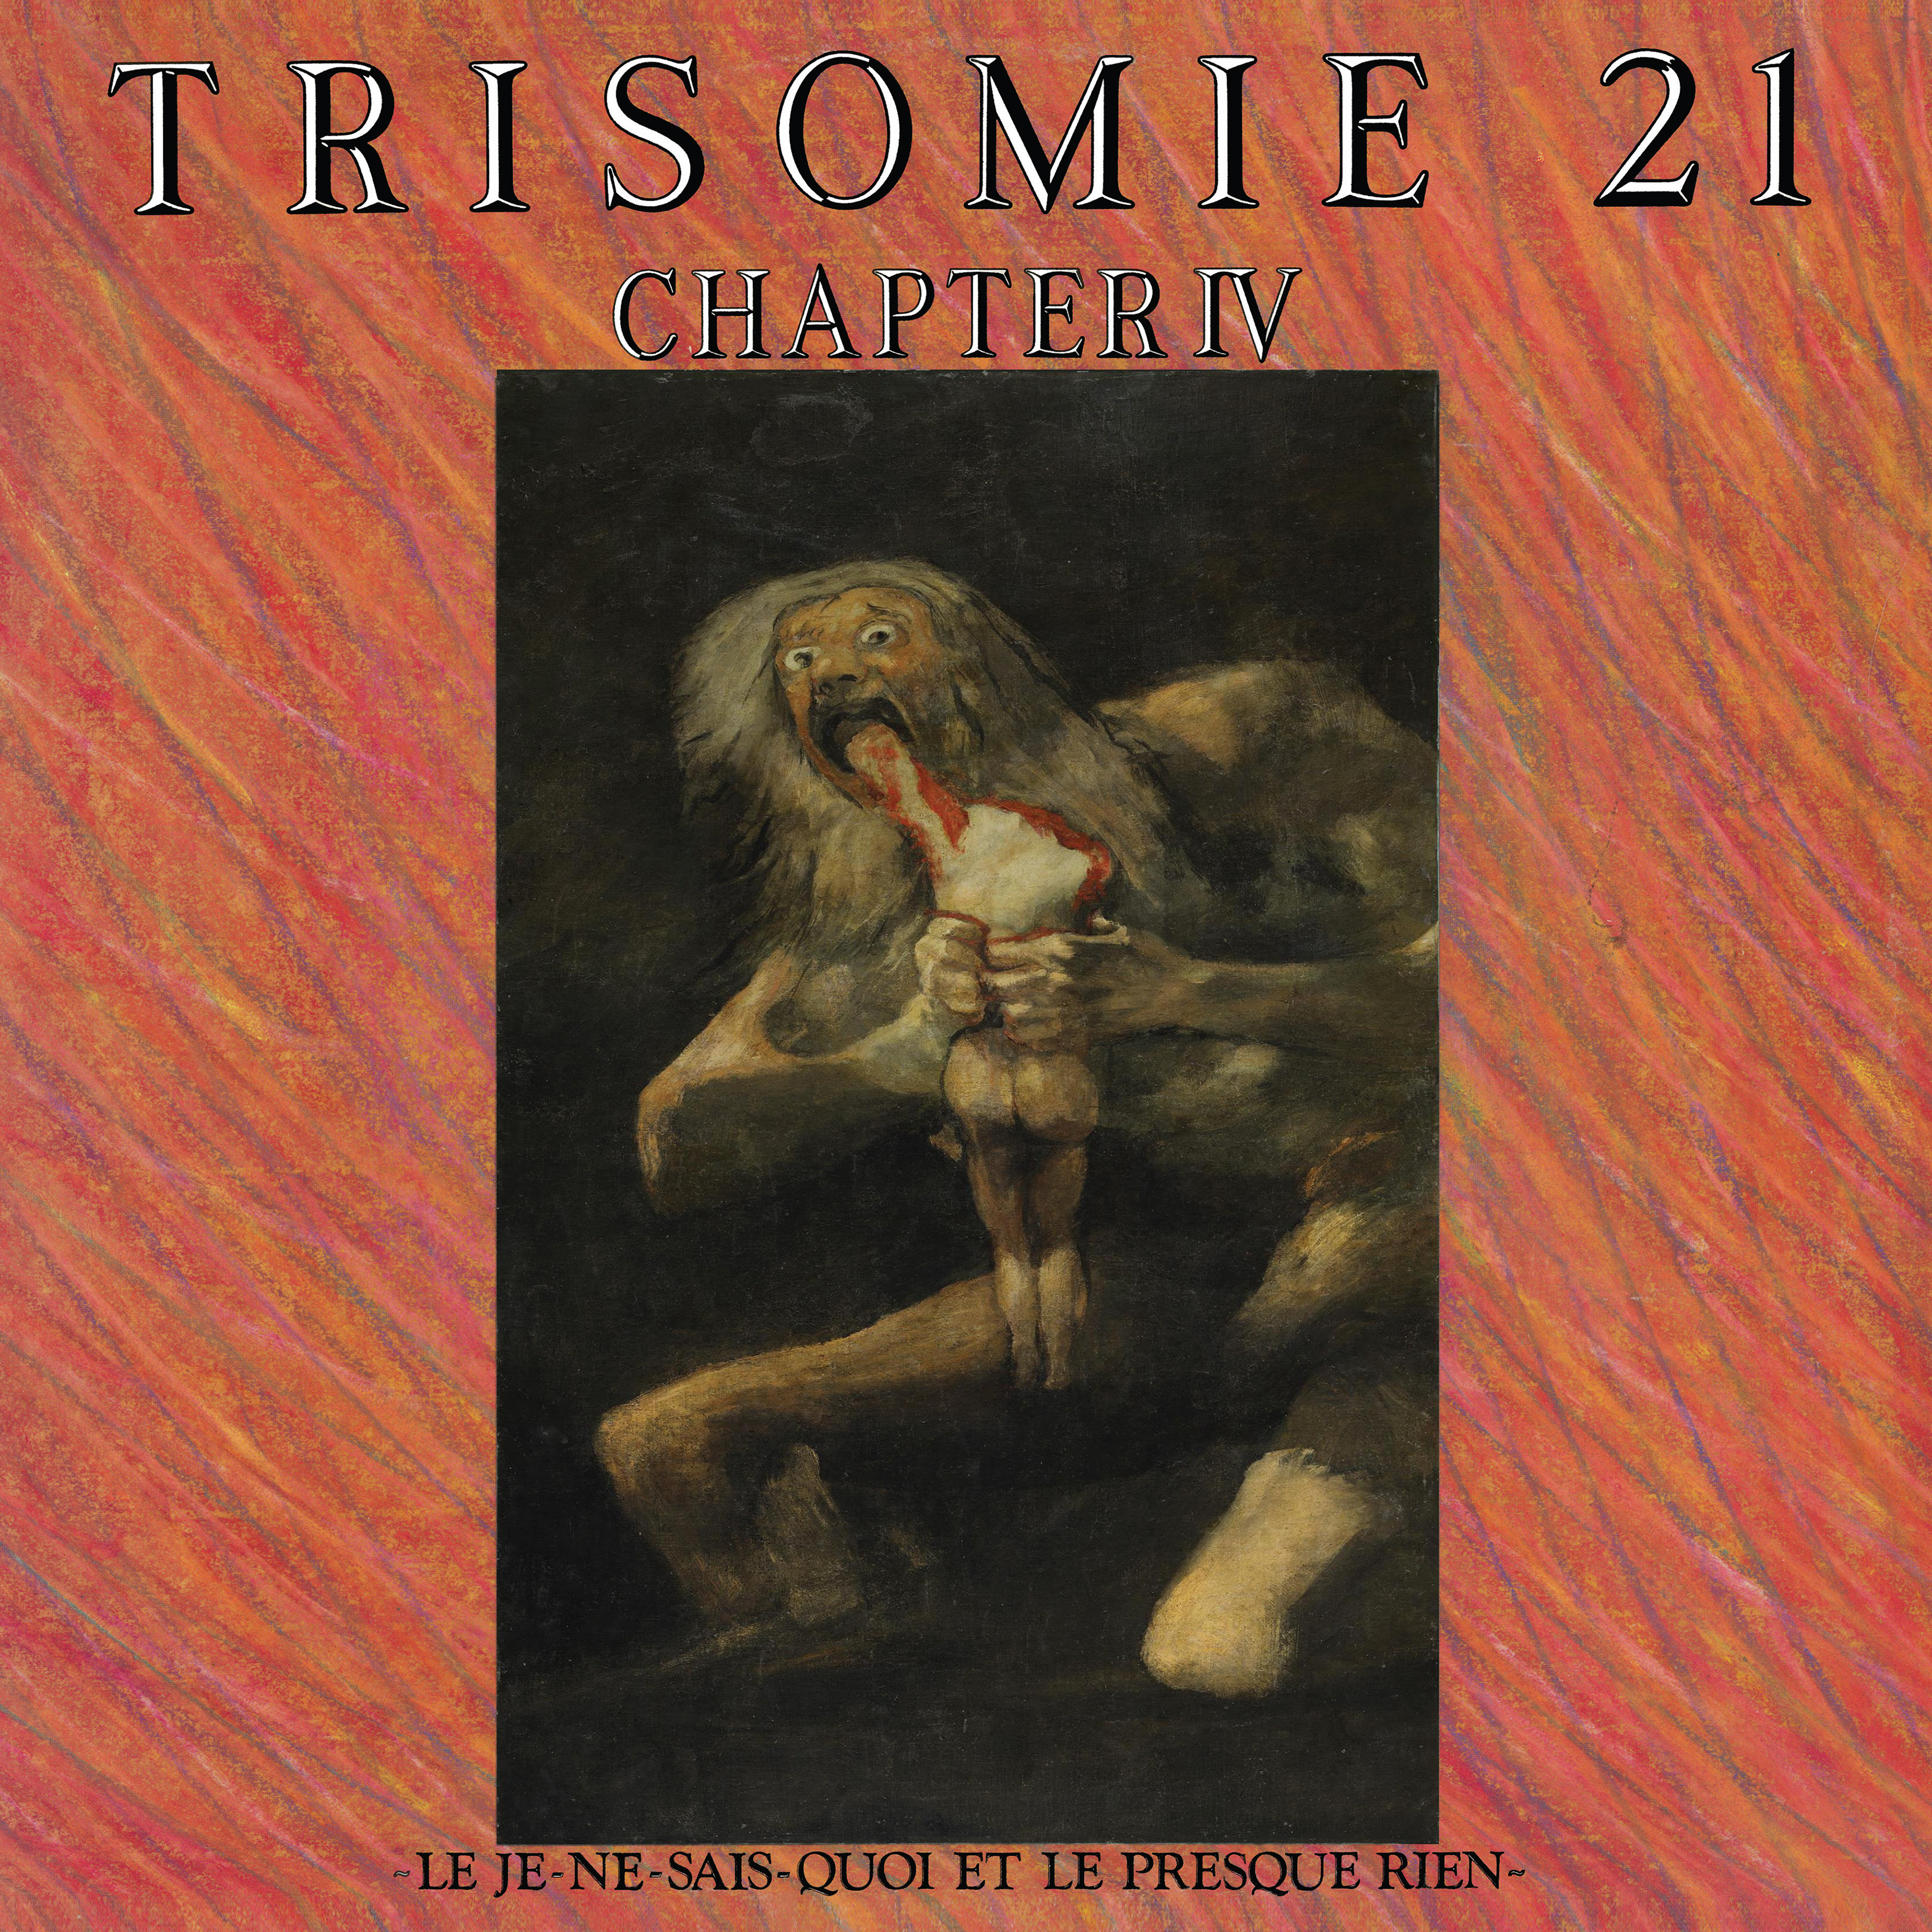 Trisomie 21 - Chapter IV 2xLP